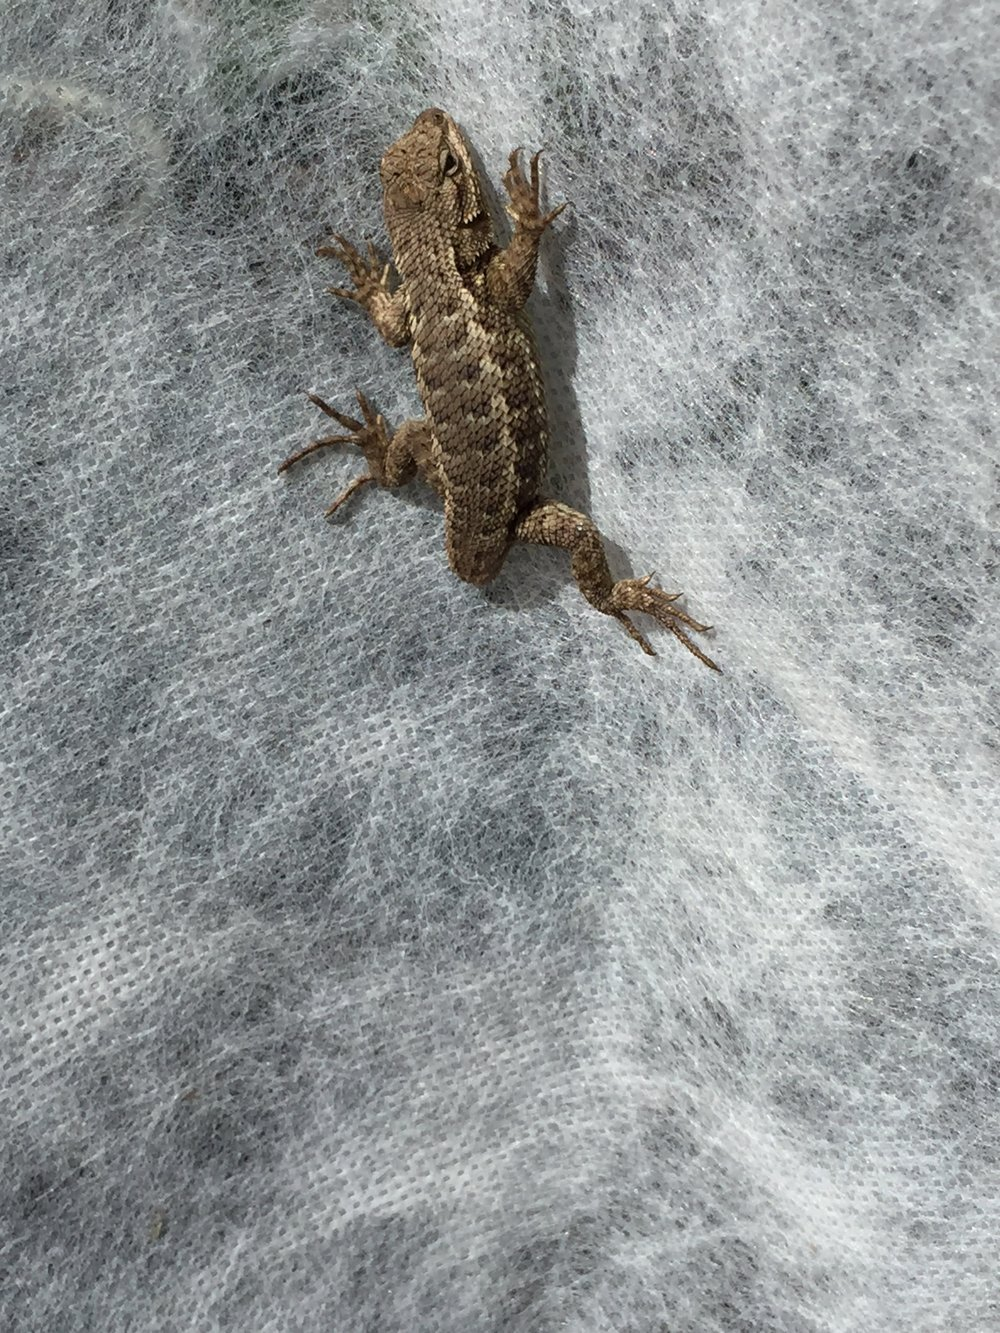 Western Fence Lizard catching some rays on the row cover